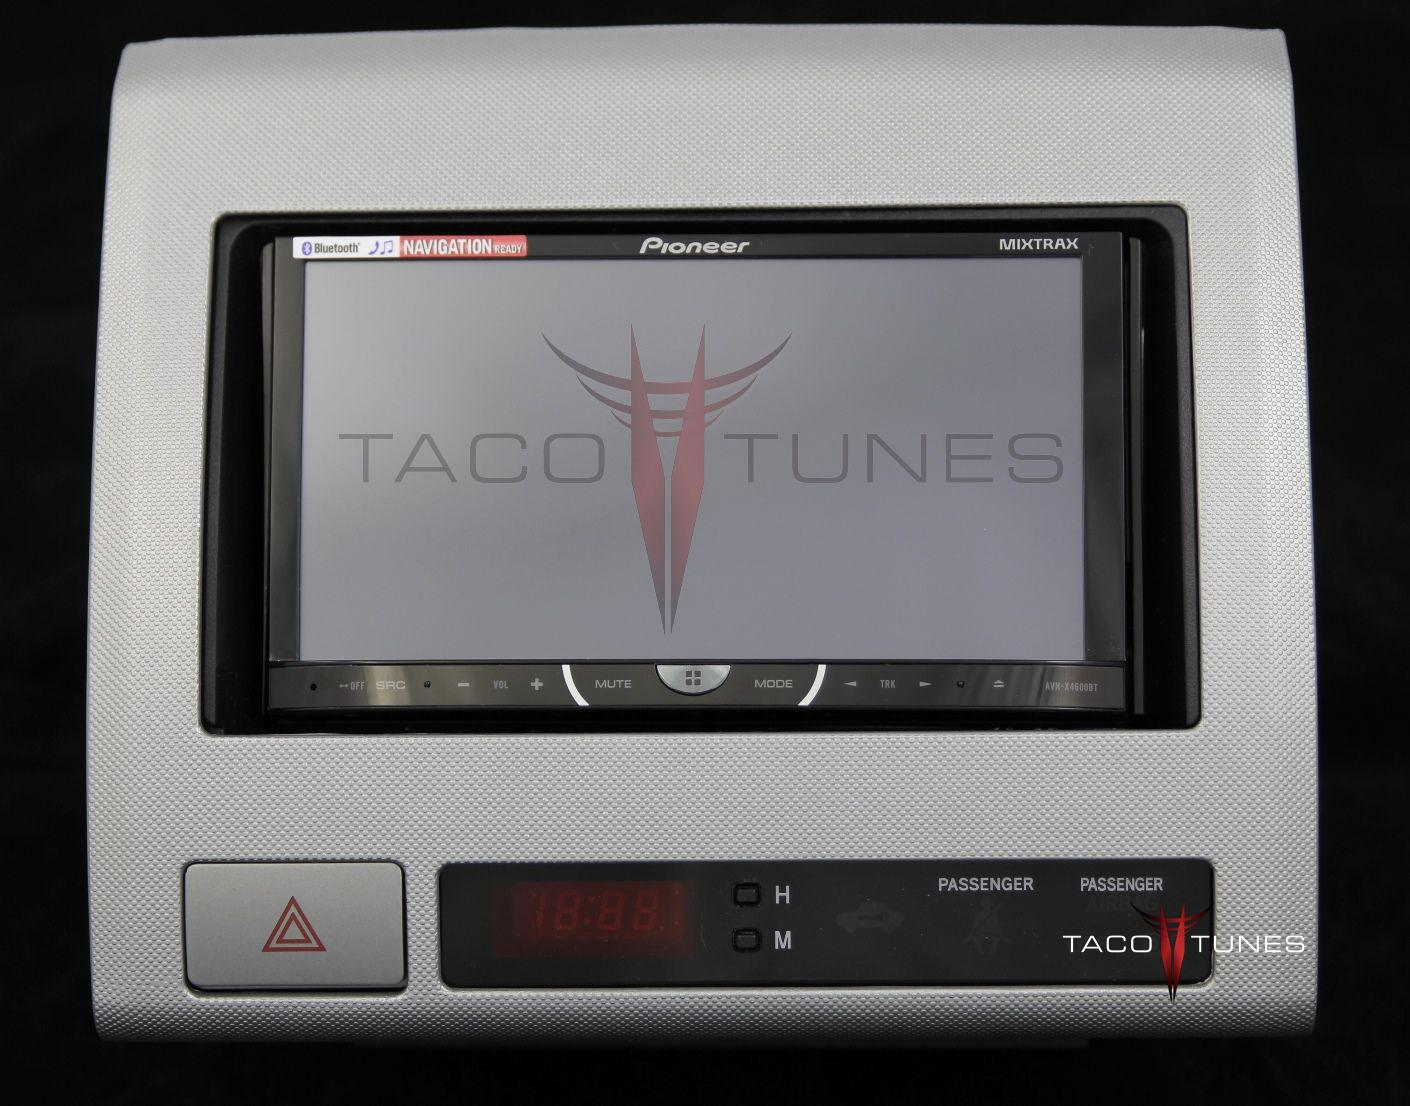 Factory Radio 2006 Toyota Prius additionally Review also Acura Rl Knock Sensor Location as well 2018 Toyota Camry as well 2014 Chevrolet Suburban Lt Lt Suv. on 2006 toyota avalon aftermarket radio